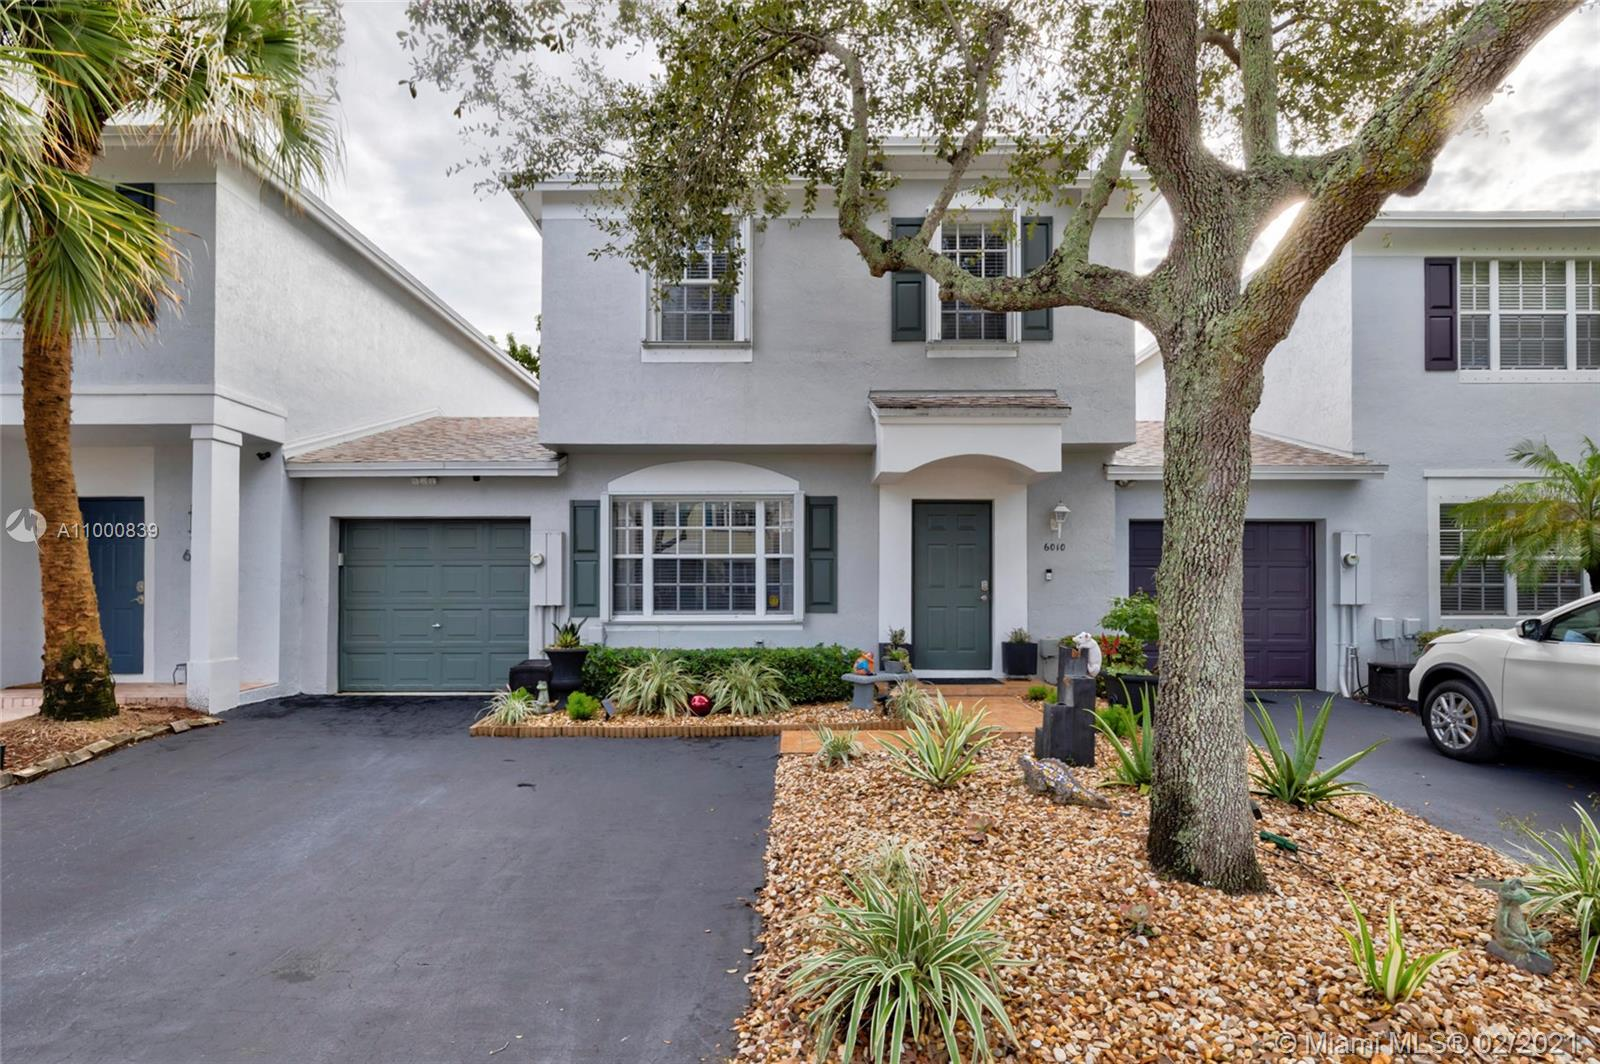 Wow no expense was spared in this beautiful 3/2.5 move in ready townhouse in fabulous Plum Harbor.  Open floor plan with neutral tile on the first floor and carpet on the second. Exquisitely remodeled designer kitchen featuring Quartz countertops, shaker cabinets, S/S appliances, and custom pantry (2019). Large master suite, with walk-in-closet, and new frameless shower enclosure in the master bath (2020). Big secondary bedrooms and updated vanity in the upstairs bathroom (2019). Exterior Patio sitting area was rescreened (2019) and fenced in  beautiful outdoor paver patio grilling station with solar powered lights, tankless w/heater. Modern paint inside and out, beautiful curb appeal, smart features including thermostat, downstairs lighting, keyless entry, and the list goes on.